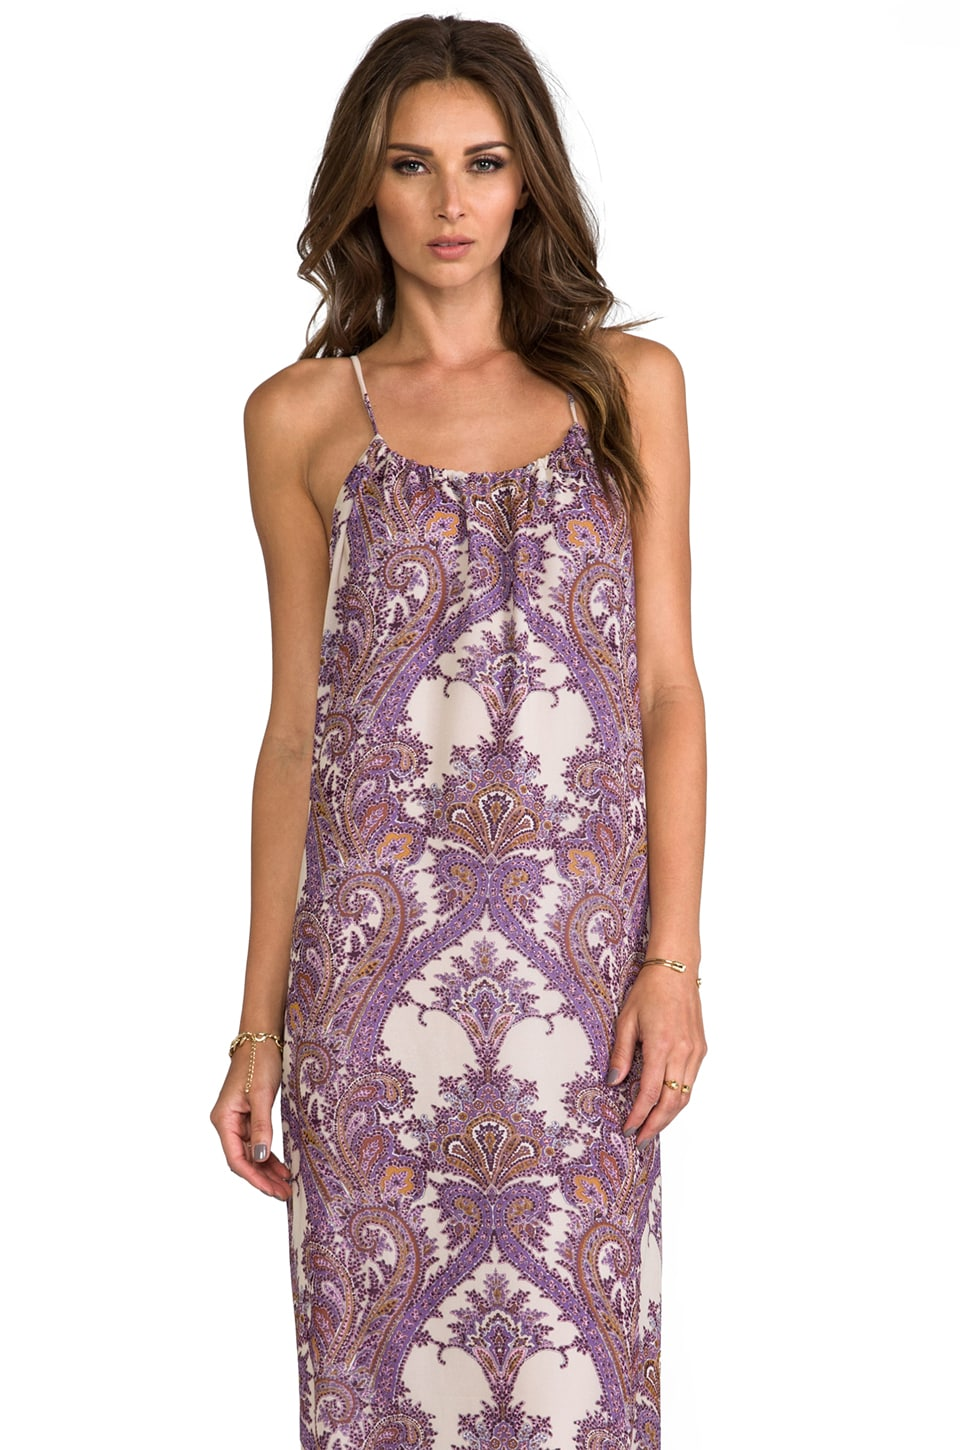 Blu Moon Sayrd Maxi Dress in Purple Paisley